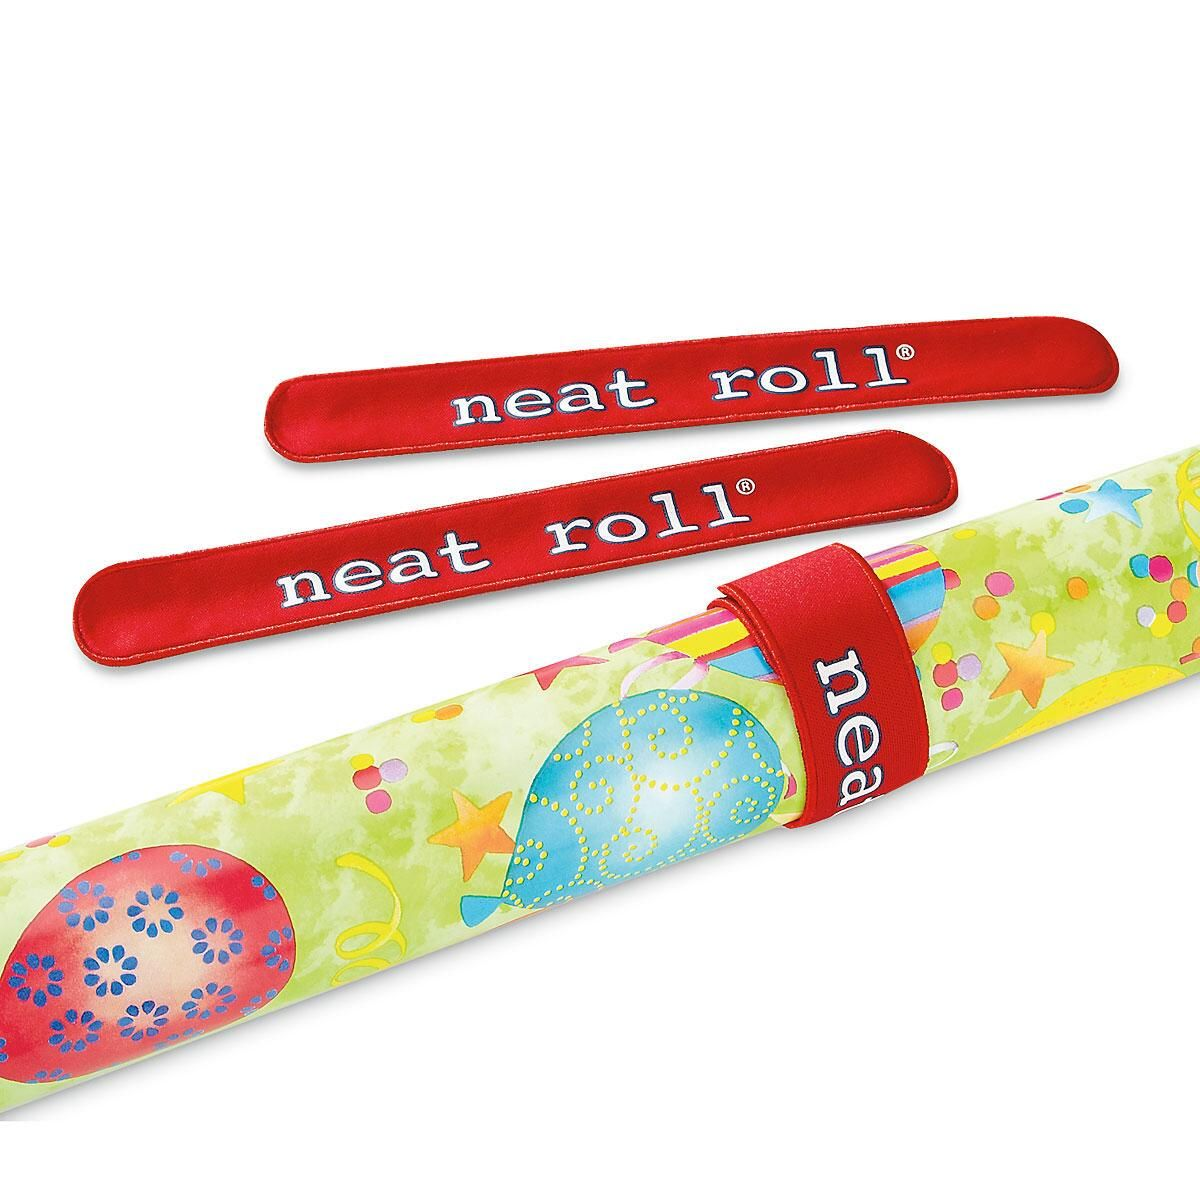 Neat Roll® Fasteners